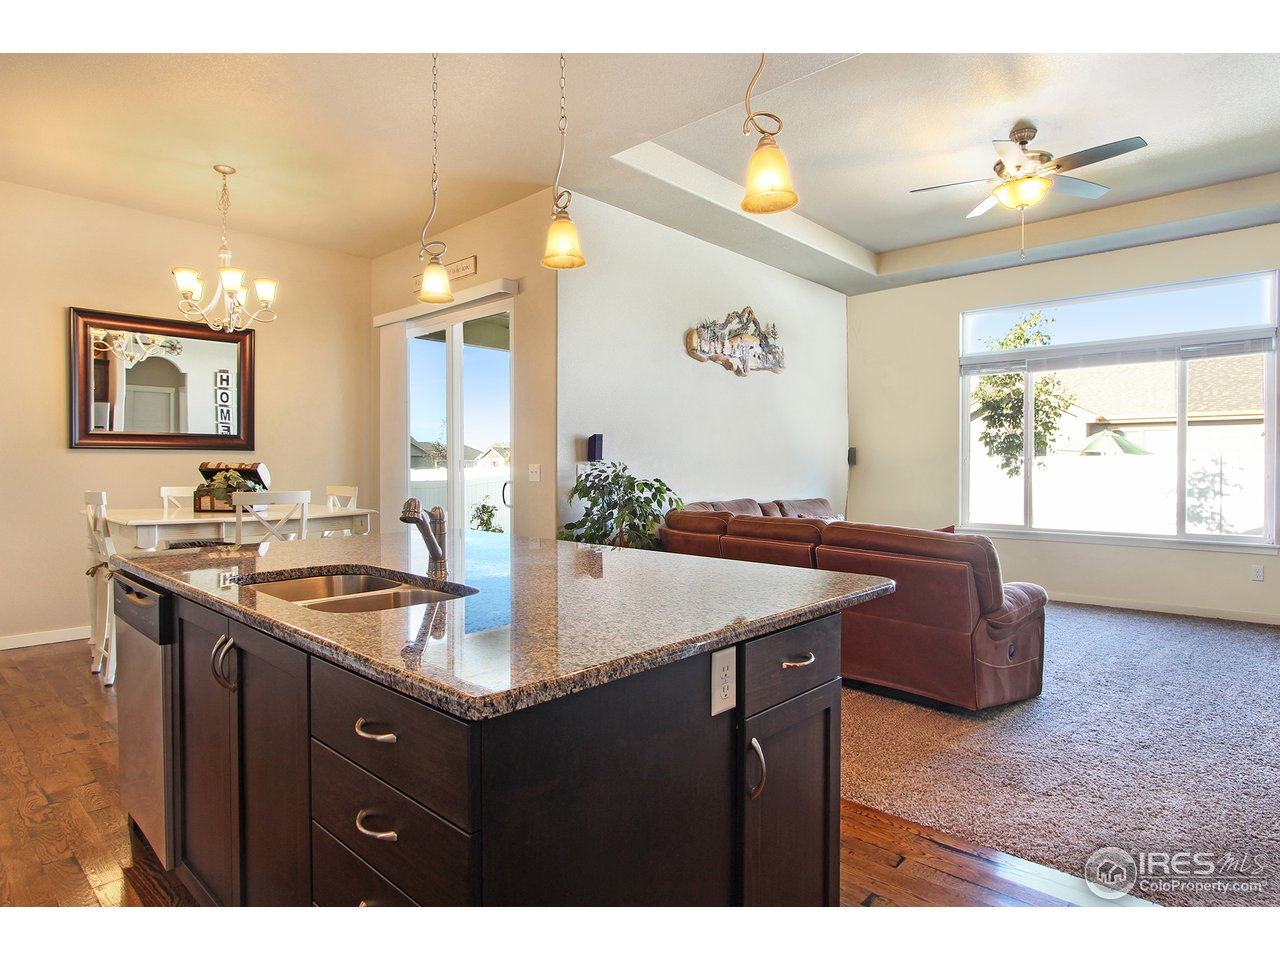 Kitchen open to Great Rm and Eating Nook